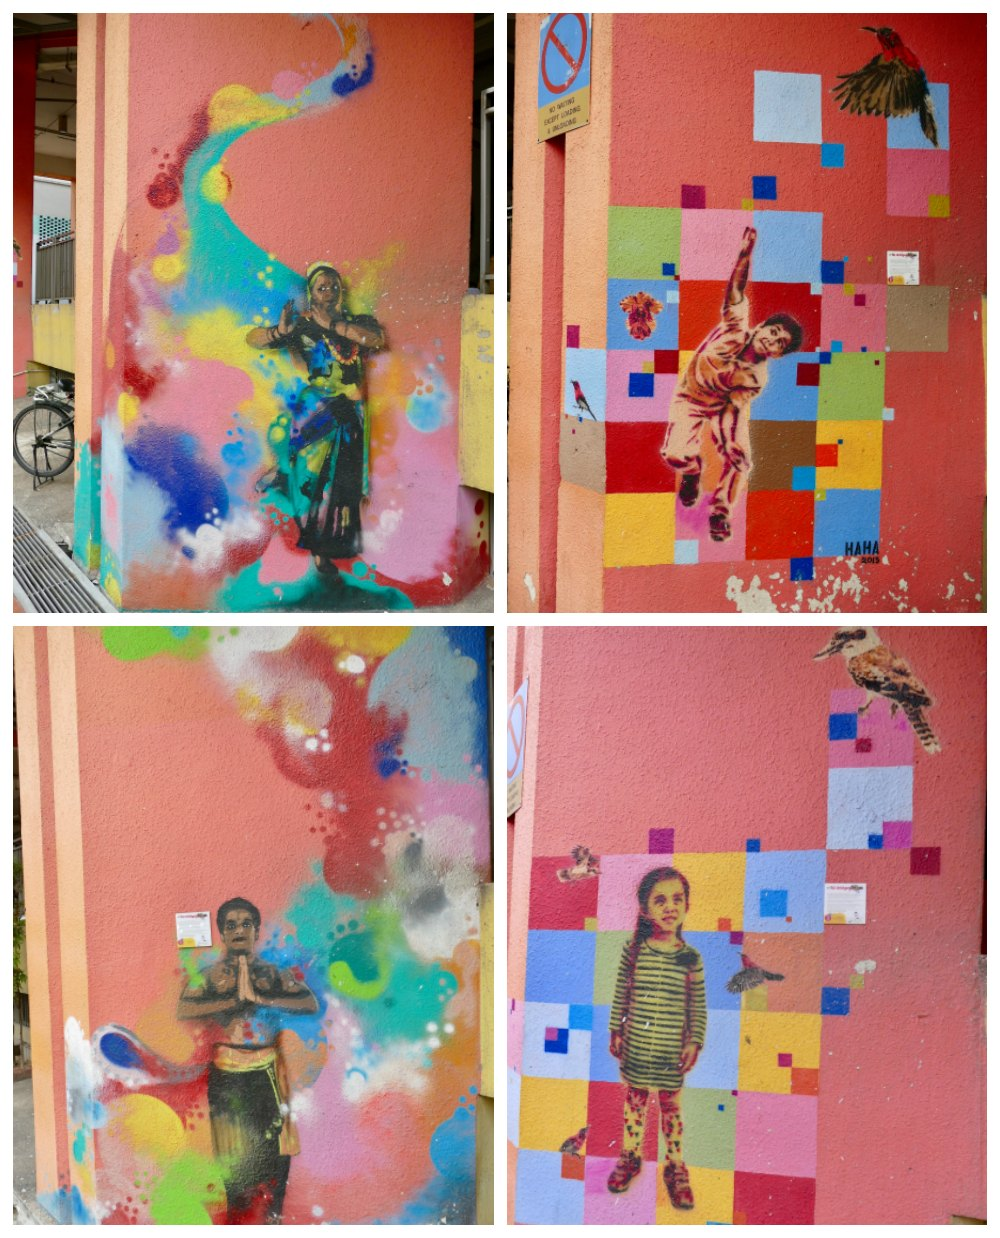 Stencil street art in Little India Singapore |curlytraveller.com